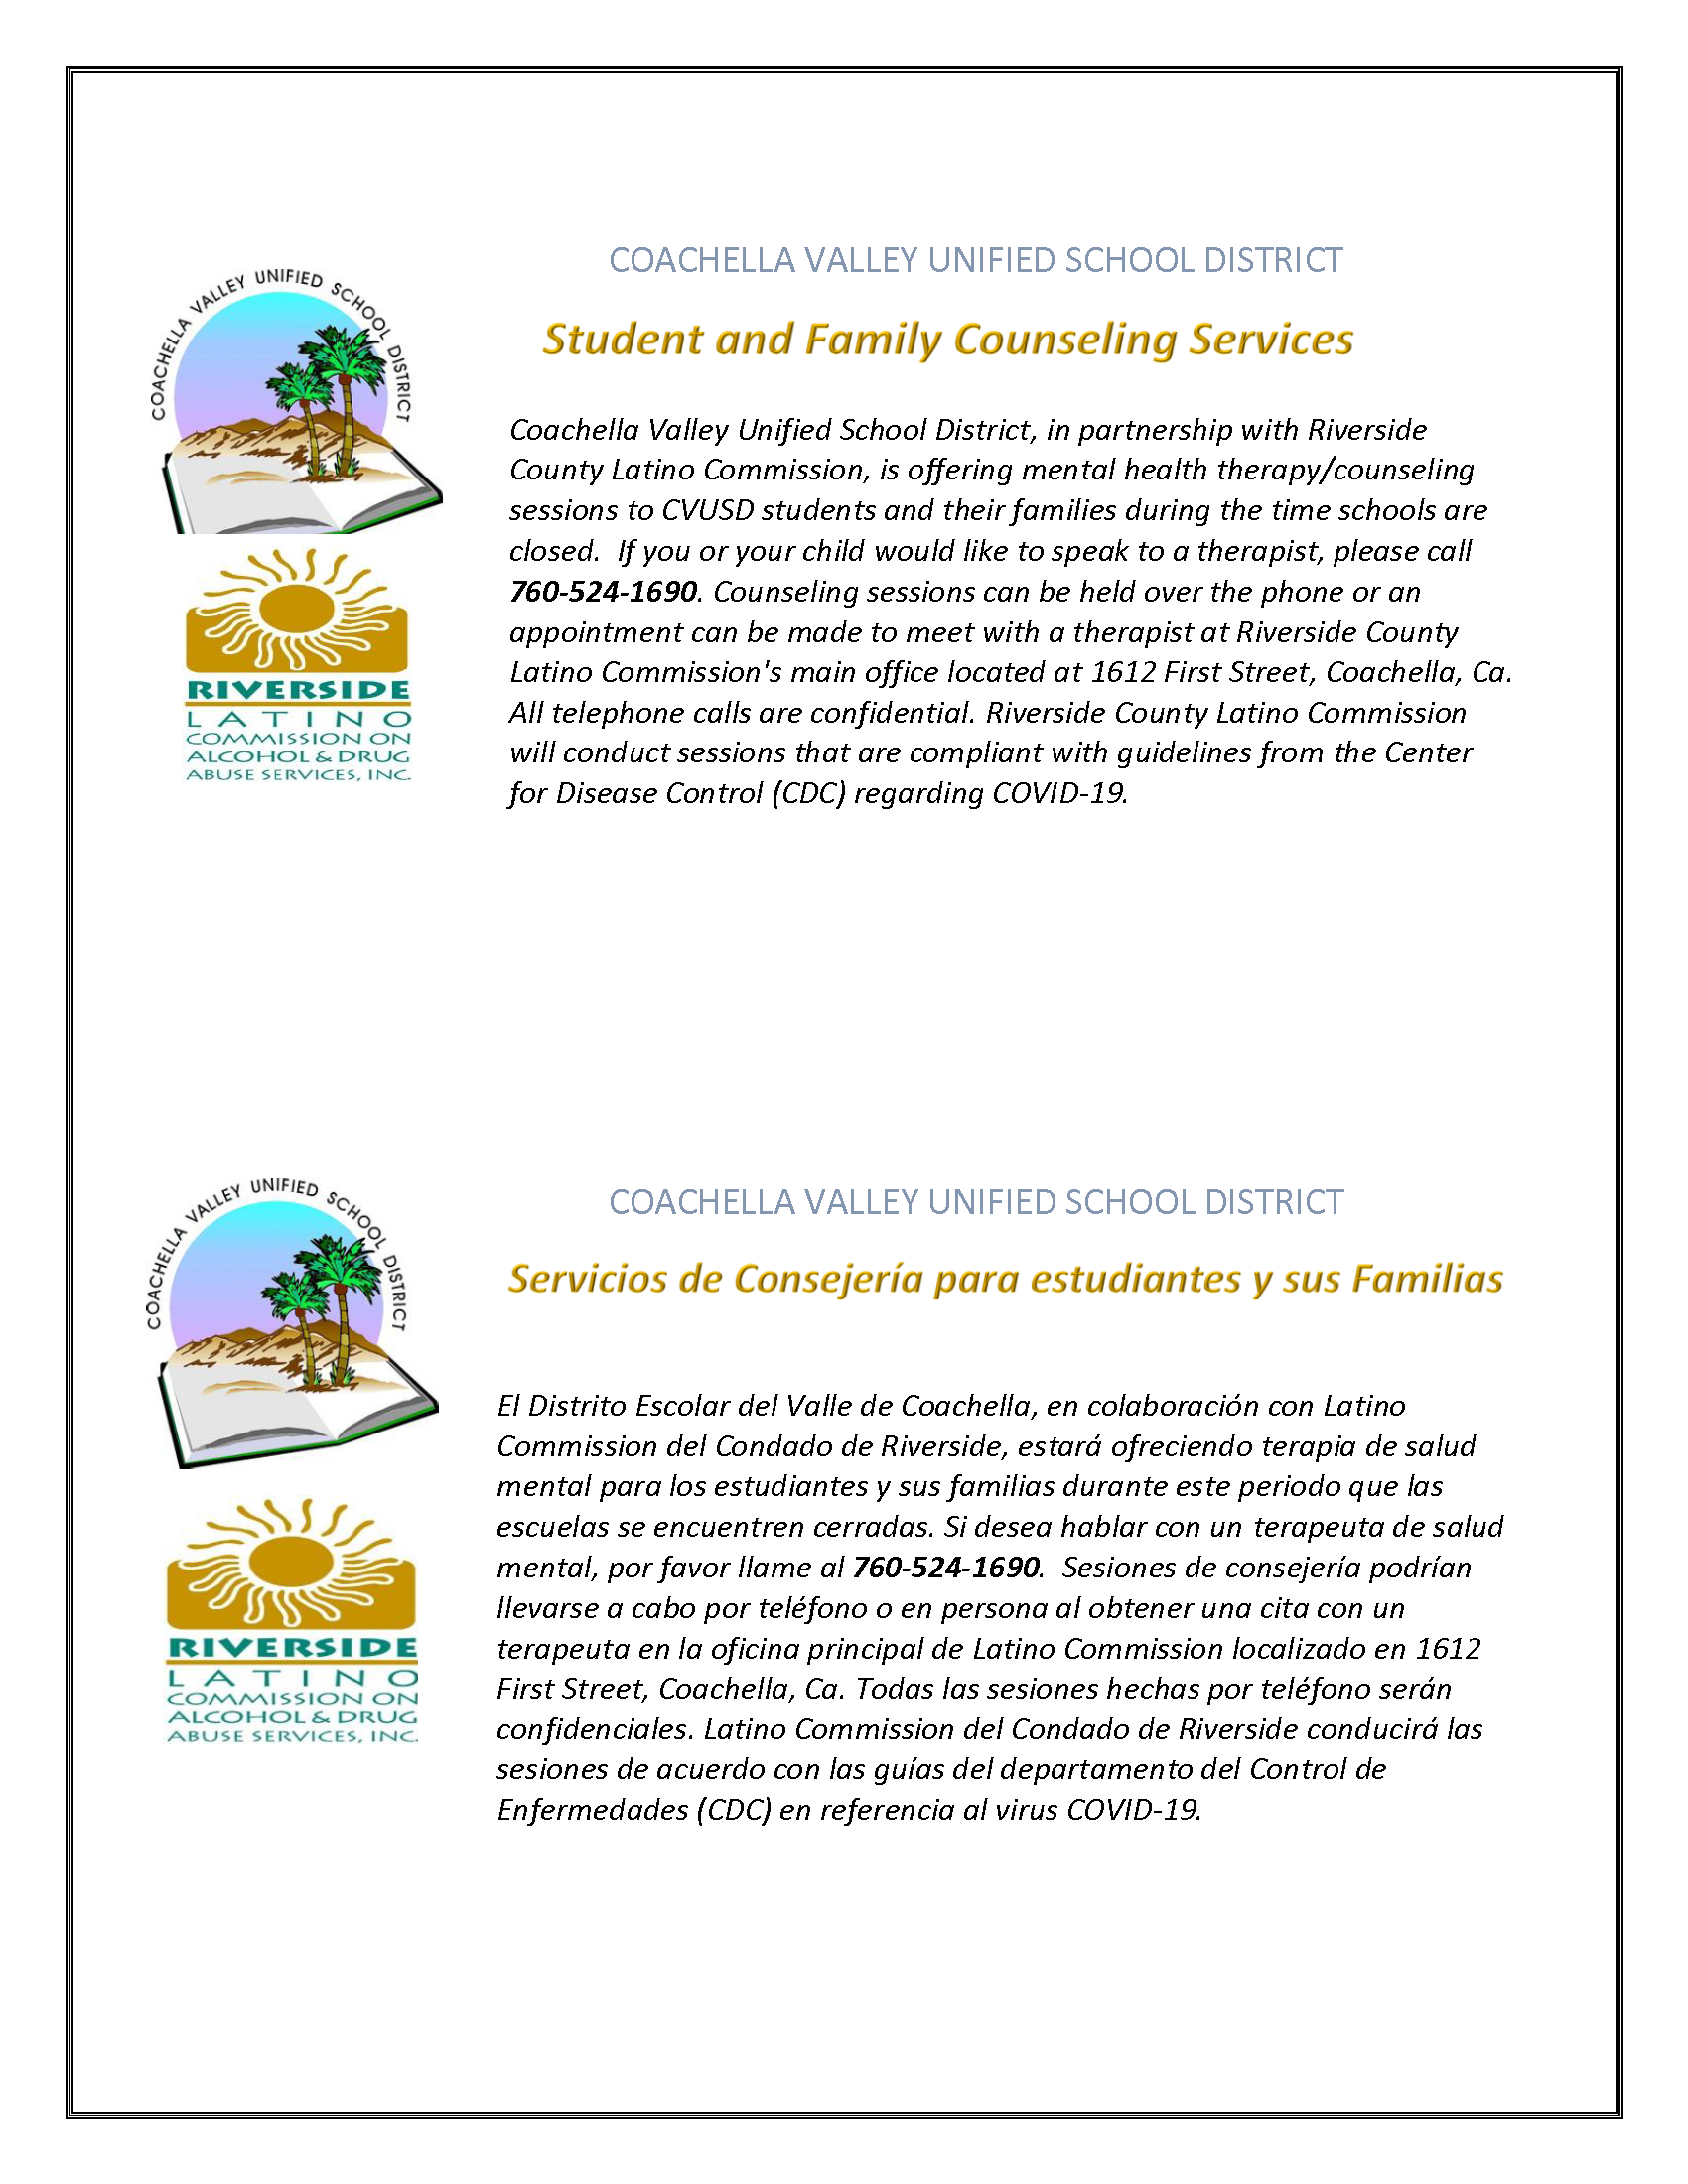 CVUSD, in partnership with Riverside County Latino Commission